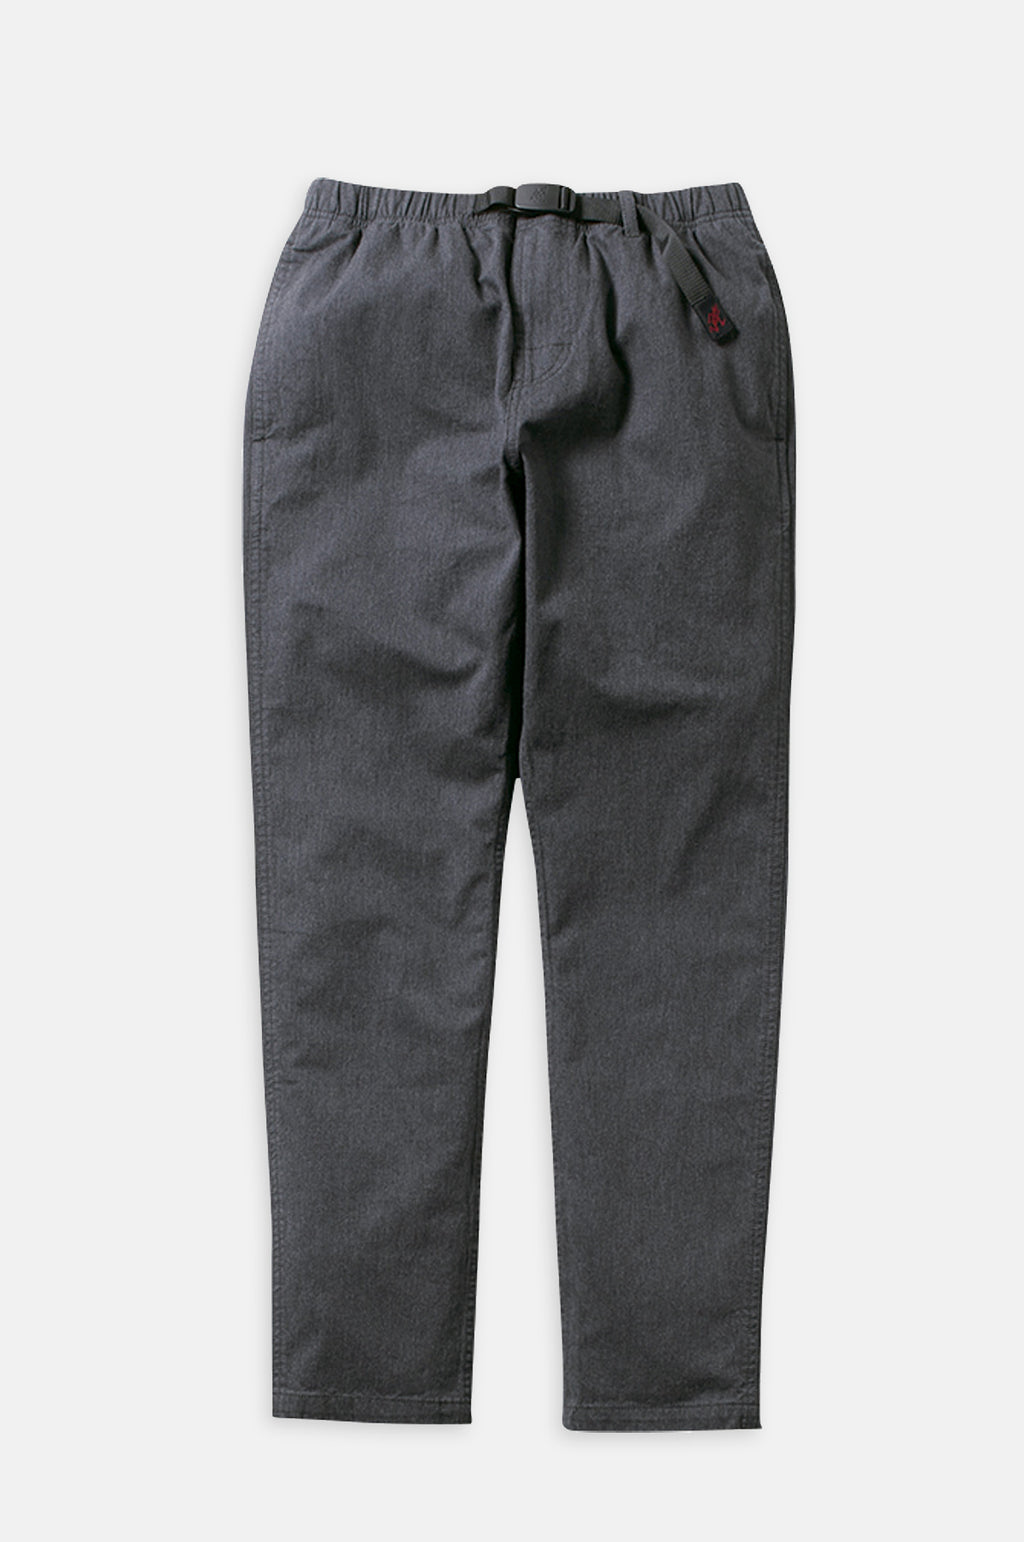 NN Just Cut Pant in Heather Charcoal